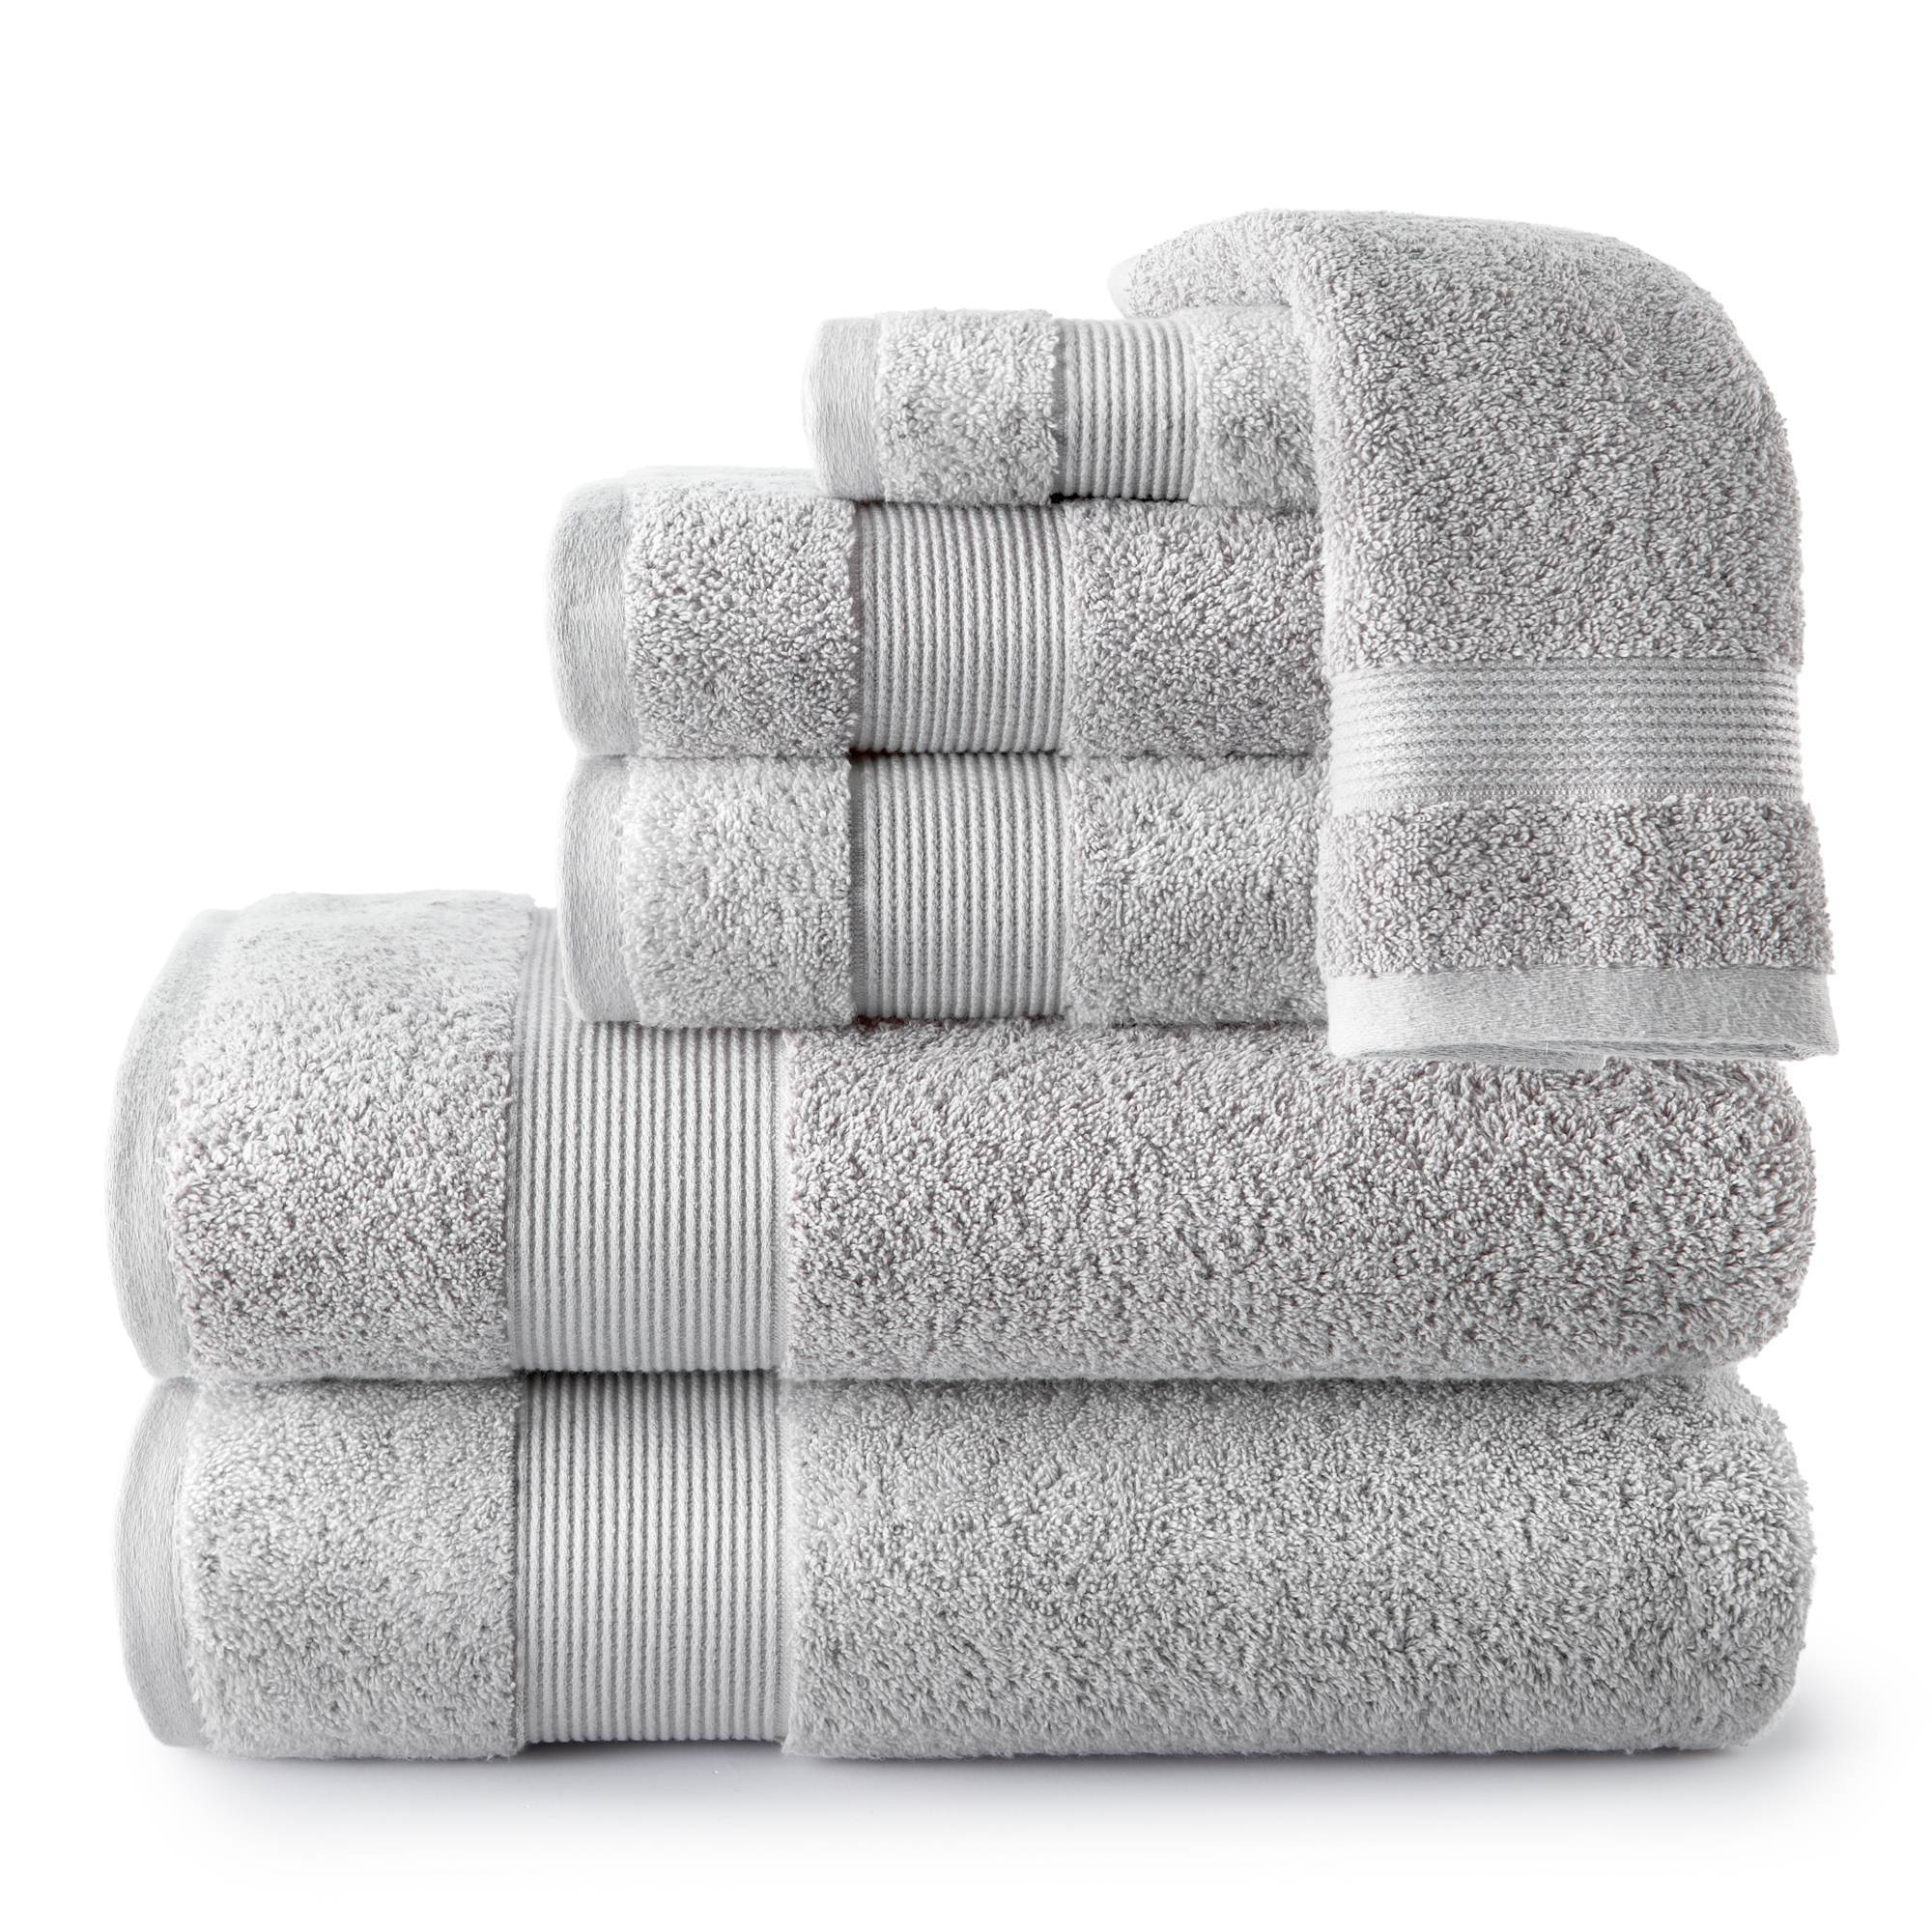 Peacock Alley Light Grey Liam Turkish Towel Collection -Sheet